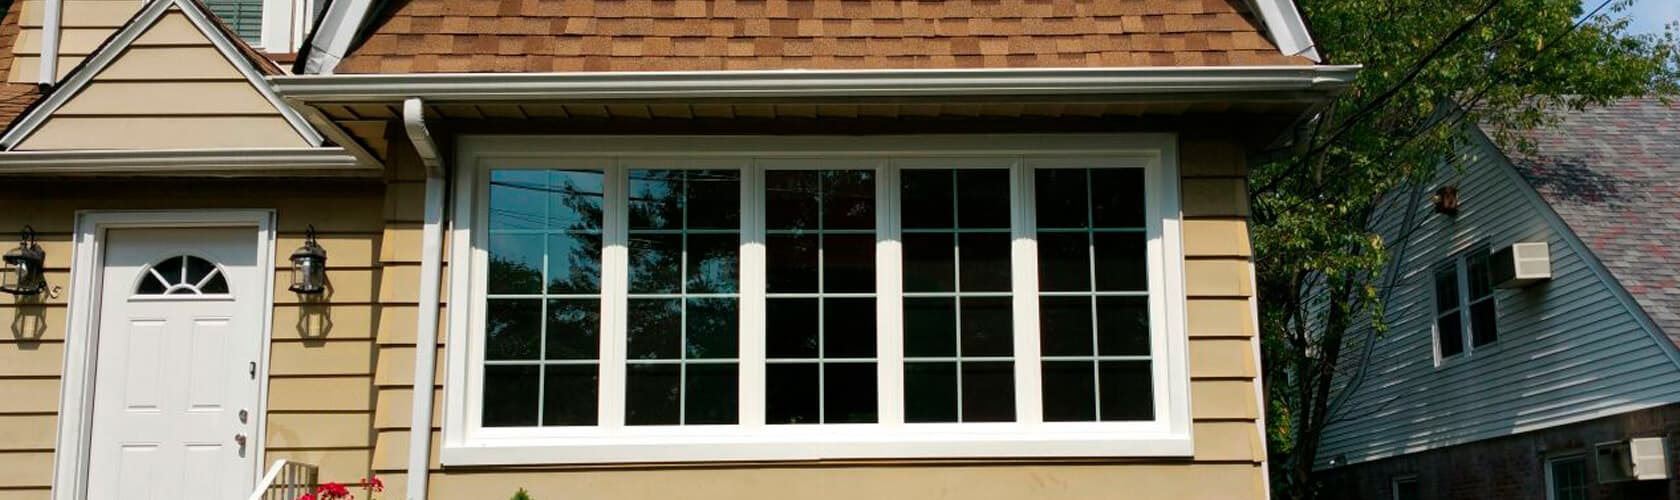 What Makes Sliding Window Installation a Peerless Choice for Homeowners in Atlanta?